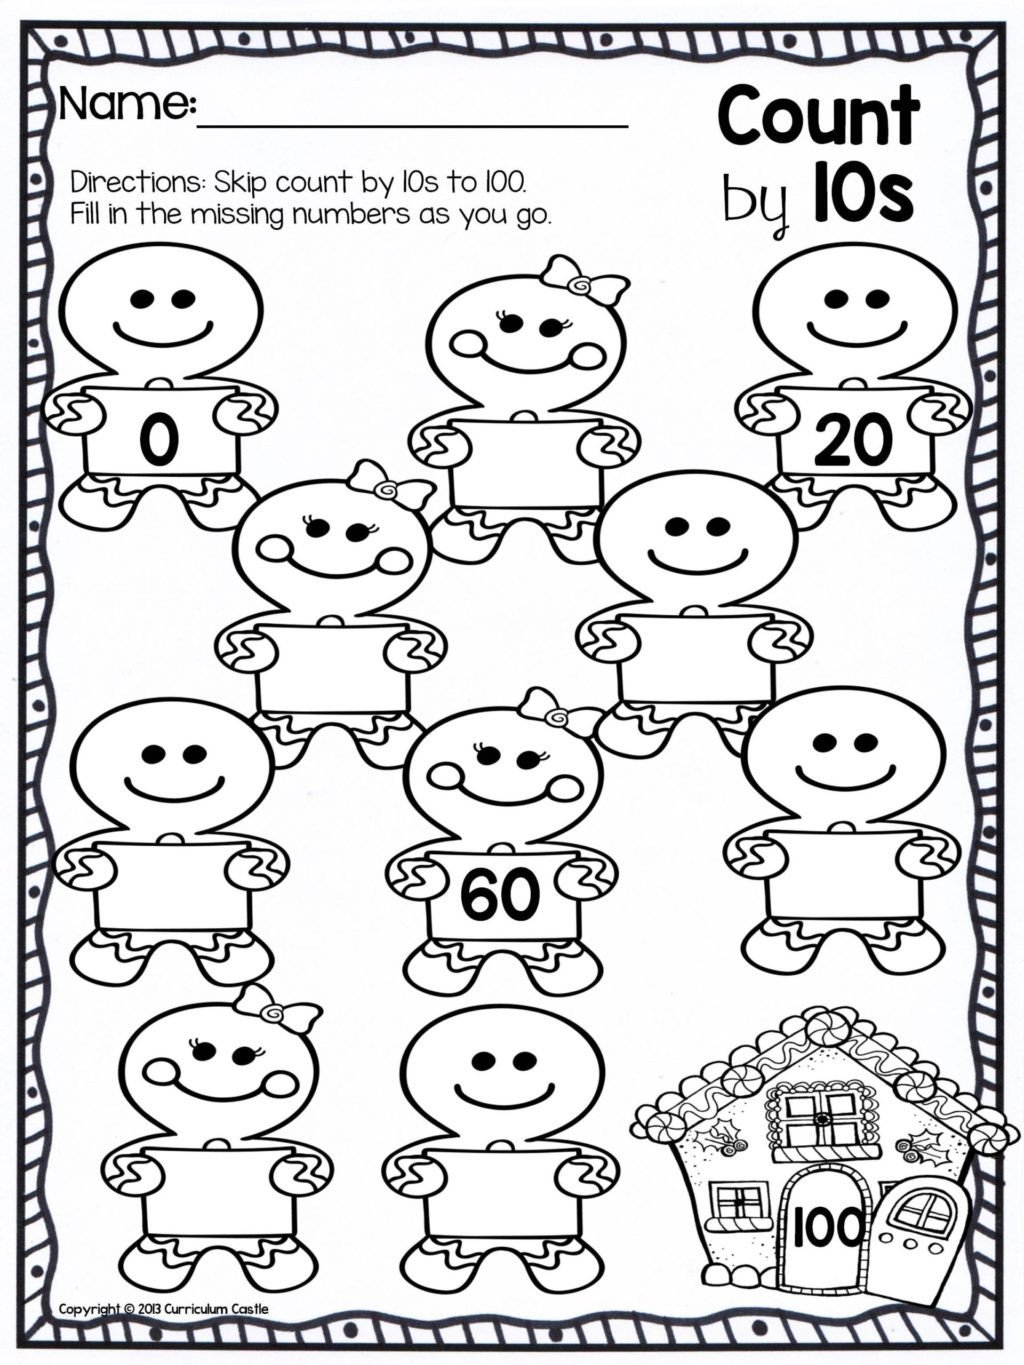 fantastic year mathematics worksheets blank number bonds simplifying kids worksheet expressions answers printable educational for preschoolers reading math brain teasers pdf practice 1024x1365